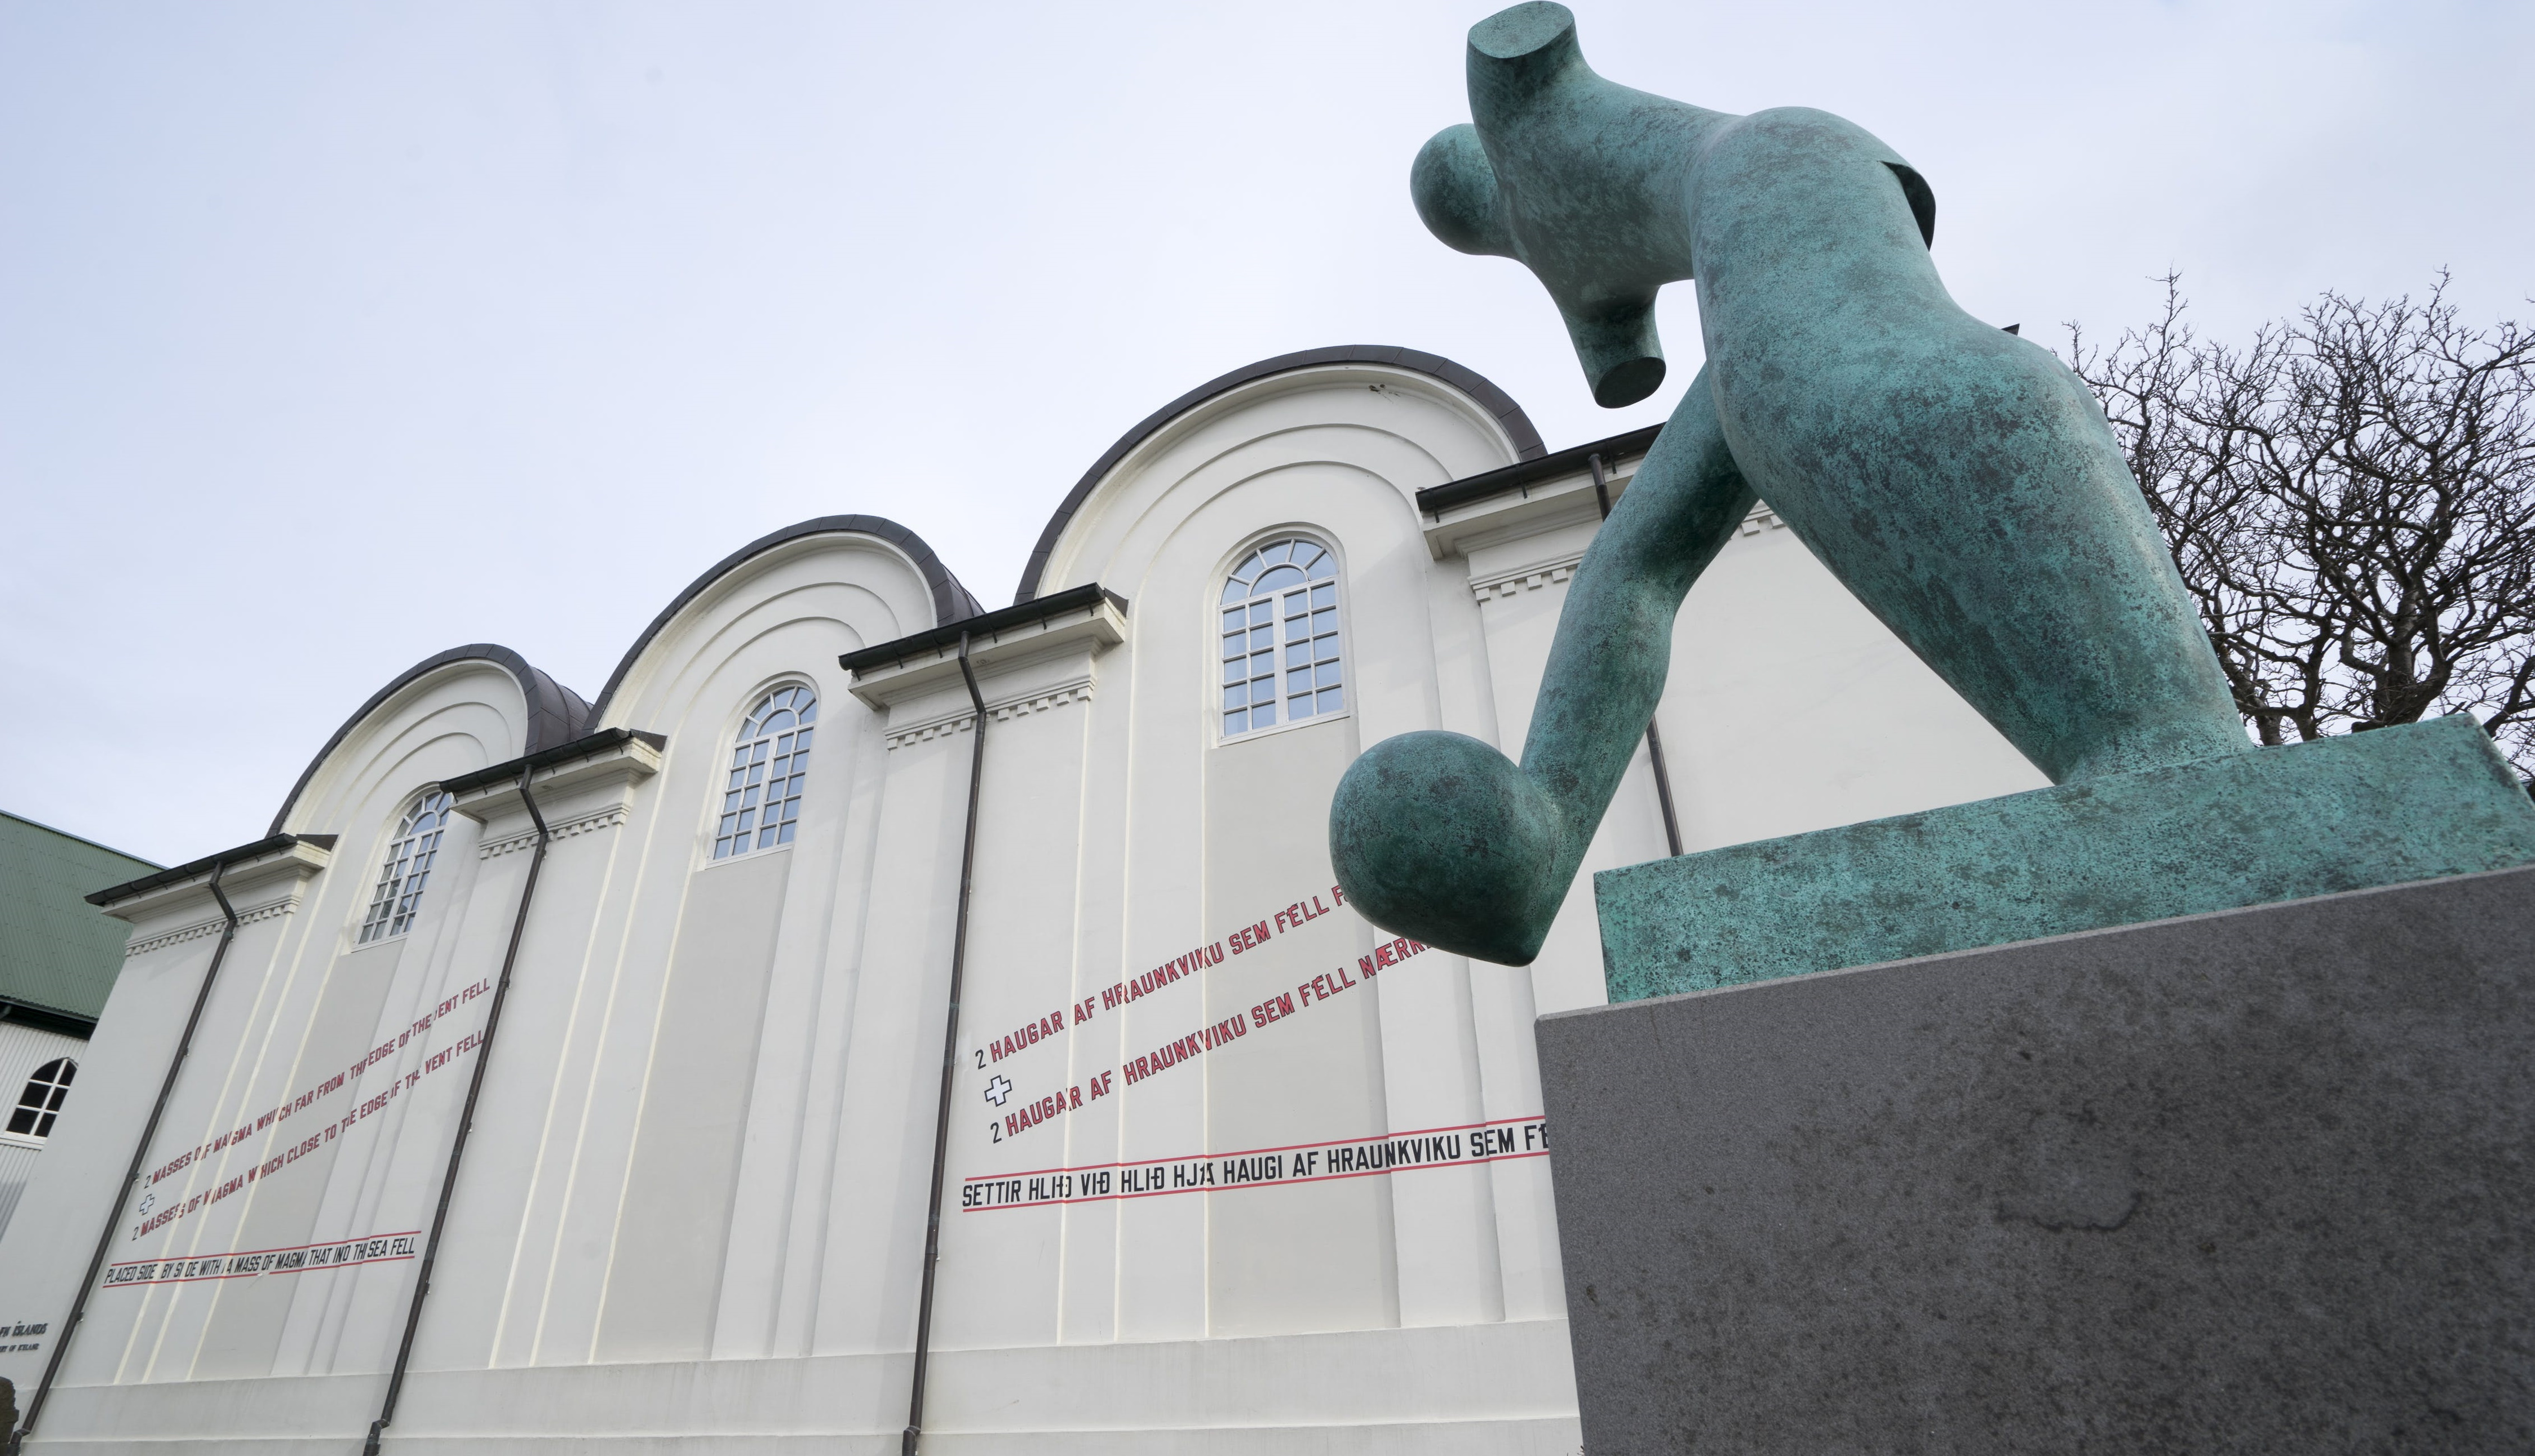 A sculpture at the National Gallery of Iceland